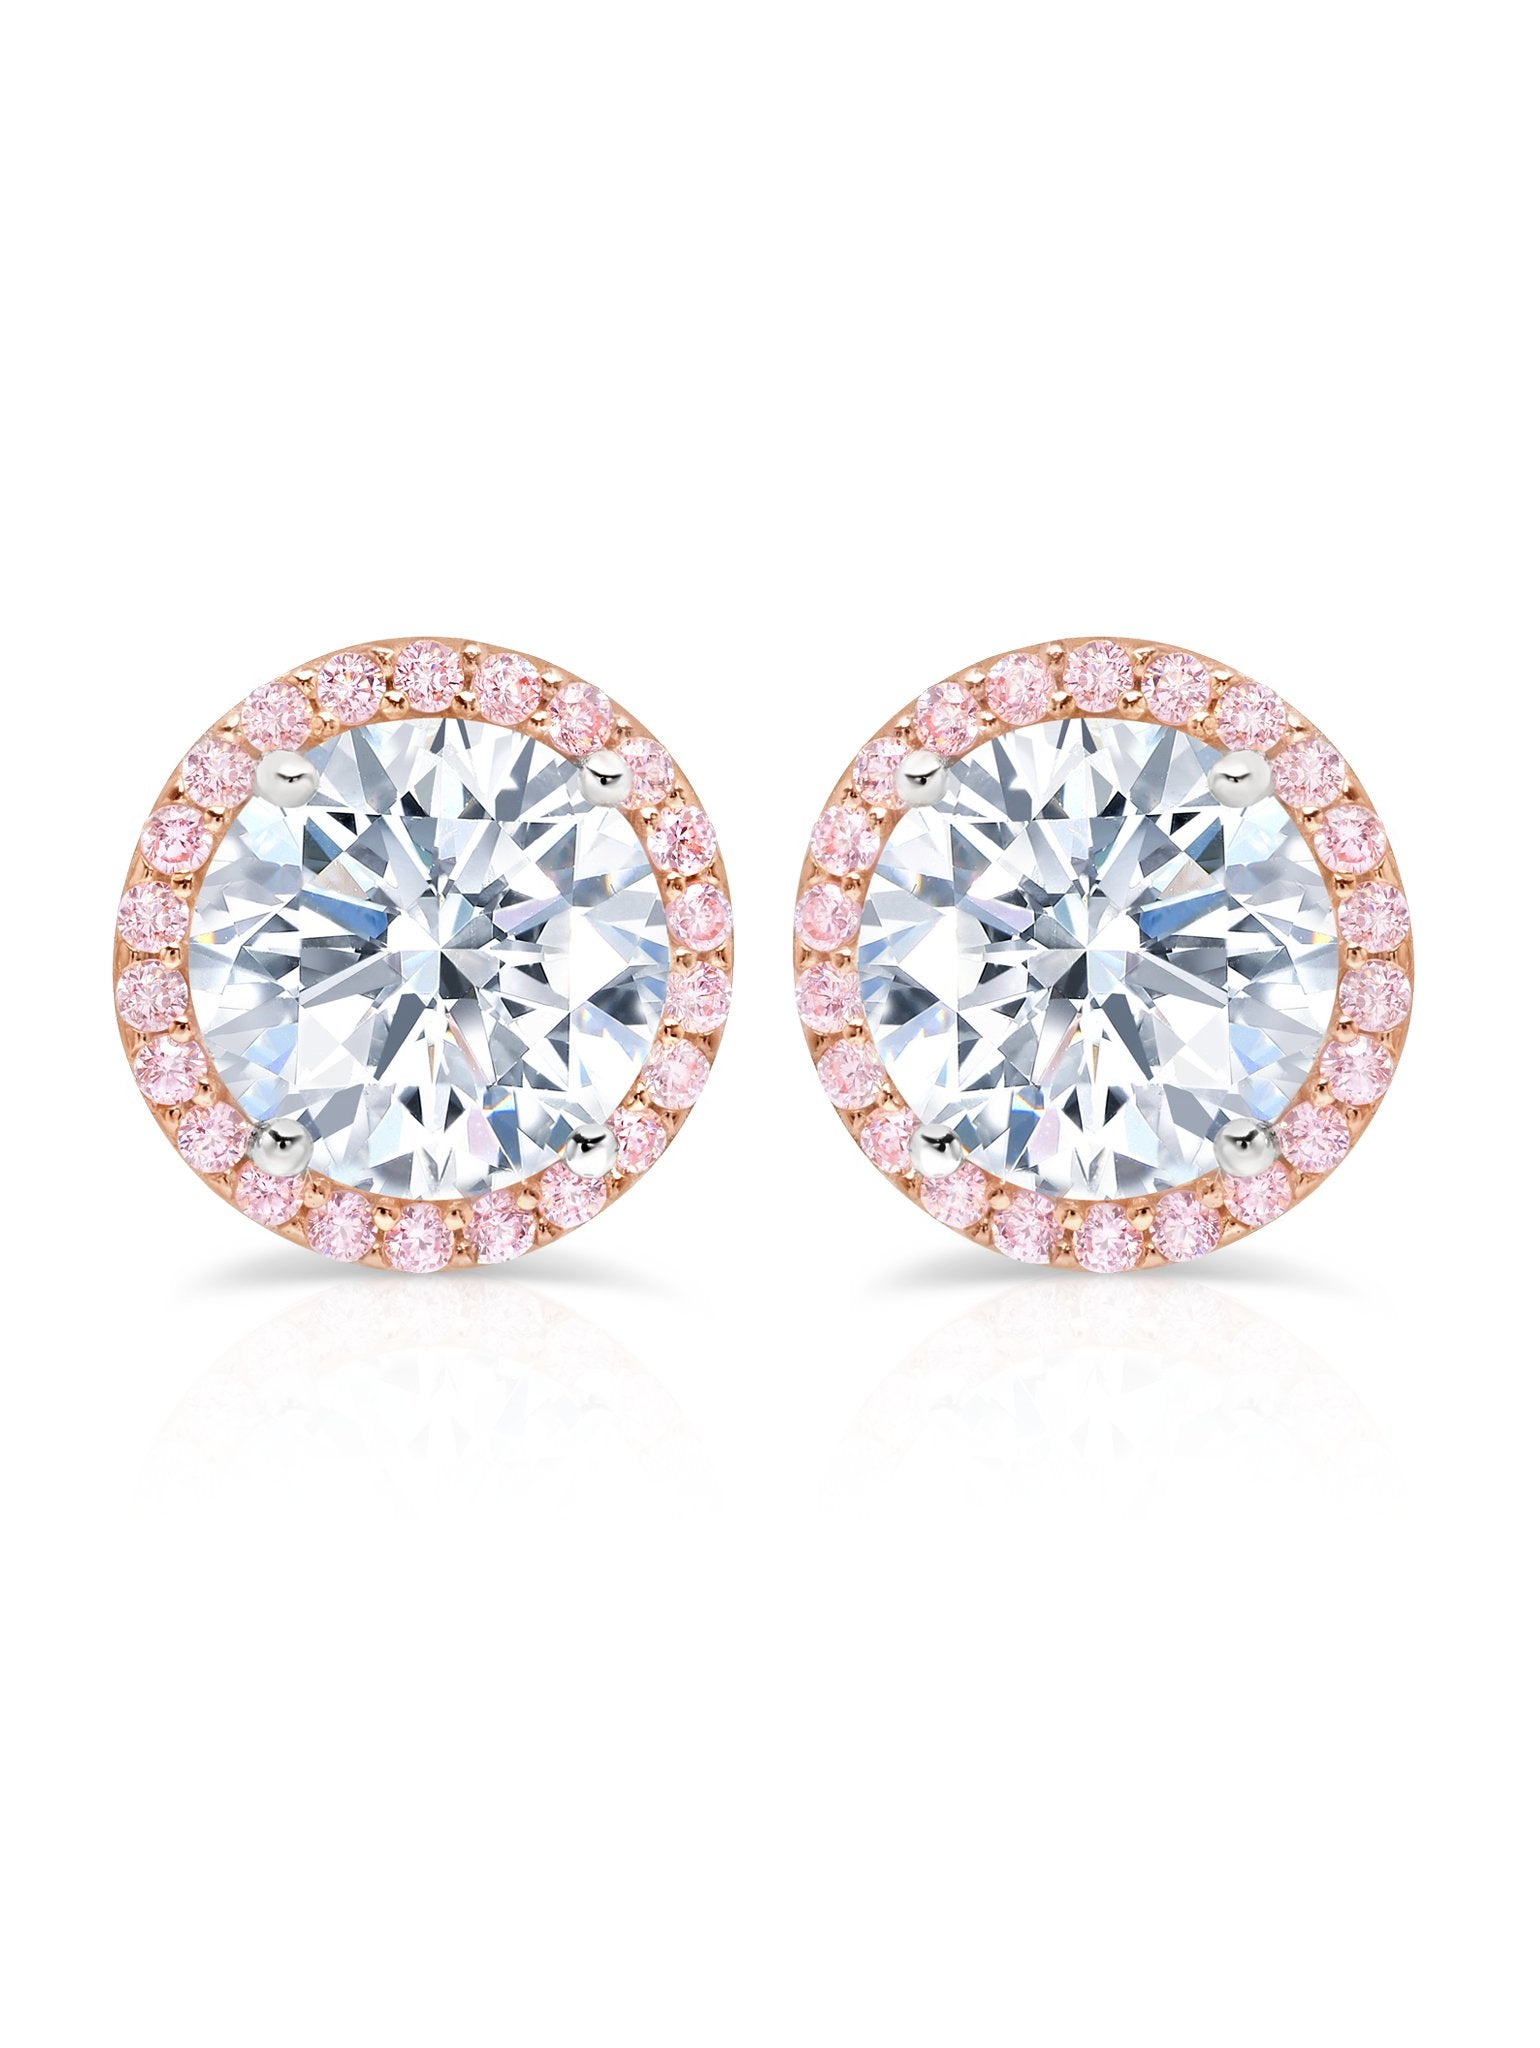 studs round october cubic stud birthstone jewelryland white pink gold com cz earrings zirconia products